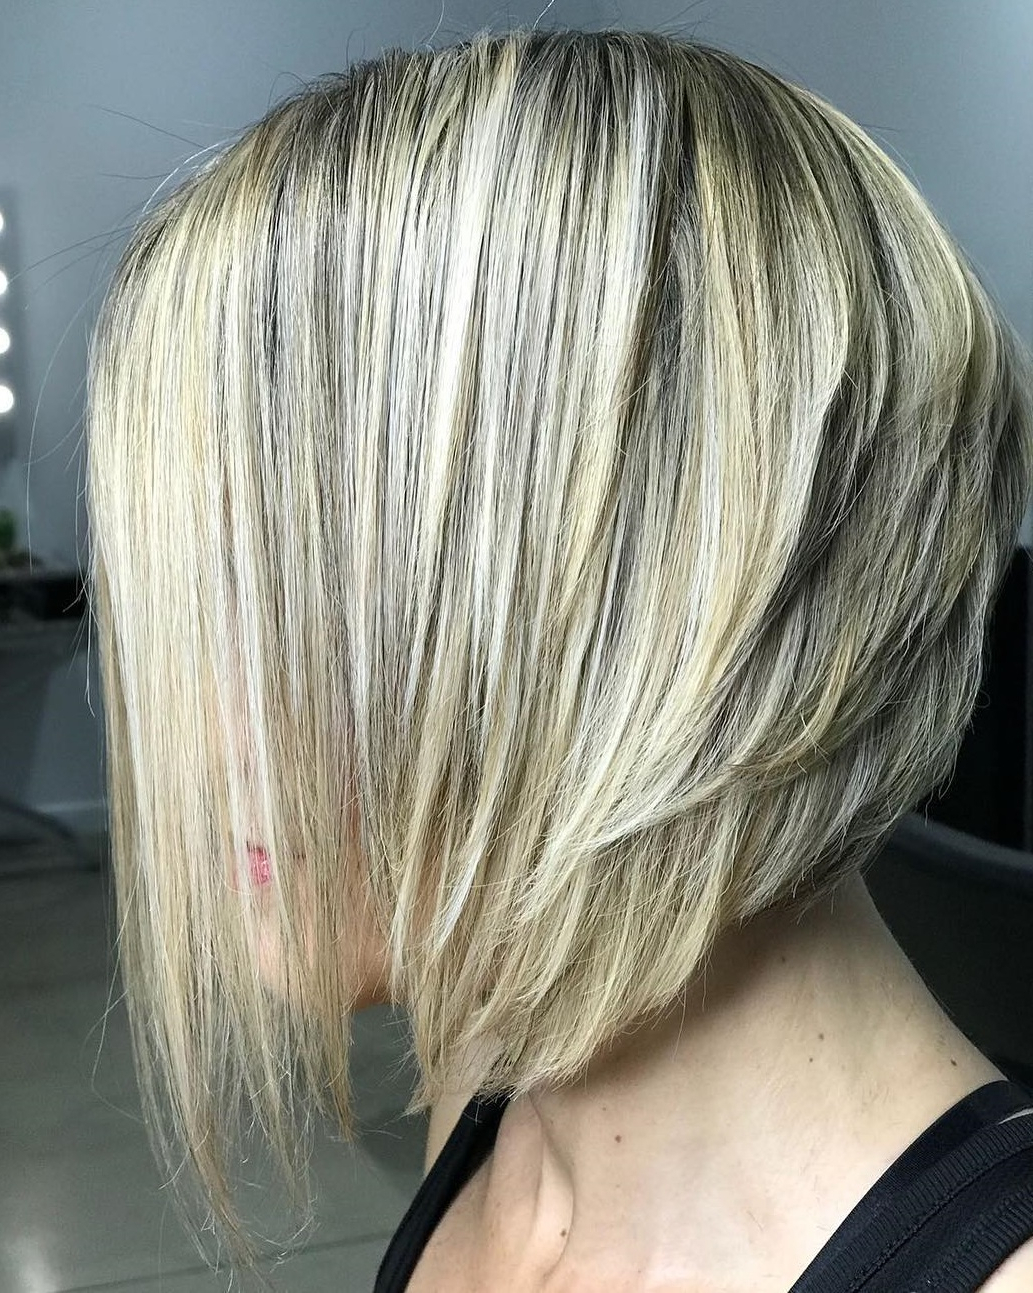 40 Awesome Ideas For Layered Bob Hairstyles You Can't Miss In Blonde Bob Hairstyles With Shaggy Crown Layers (View 4 of 20)